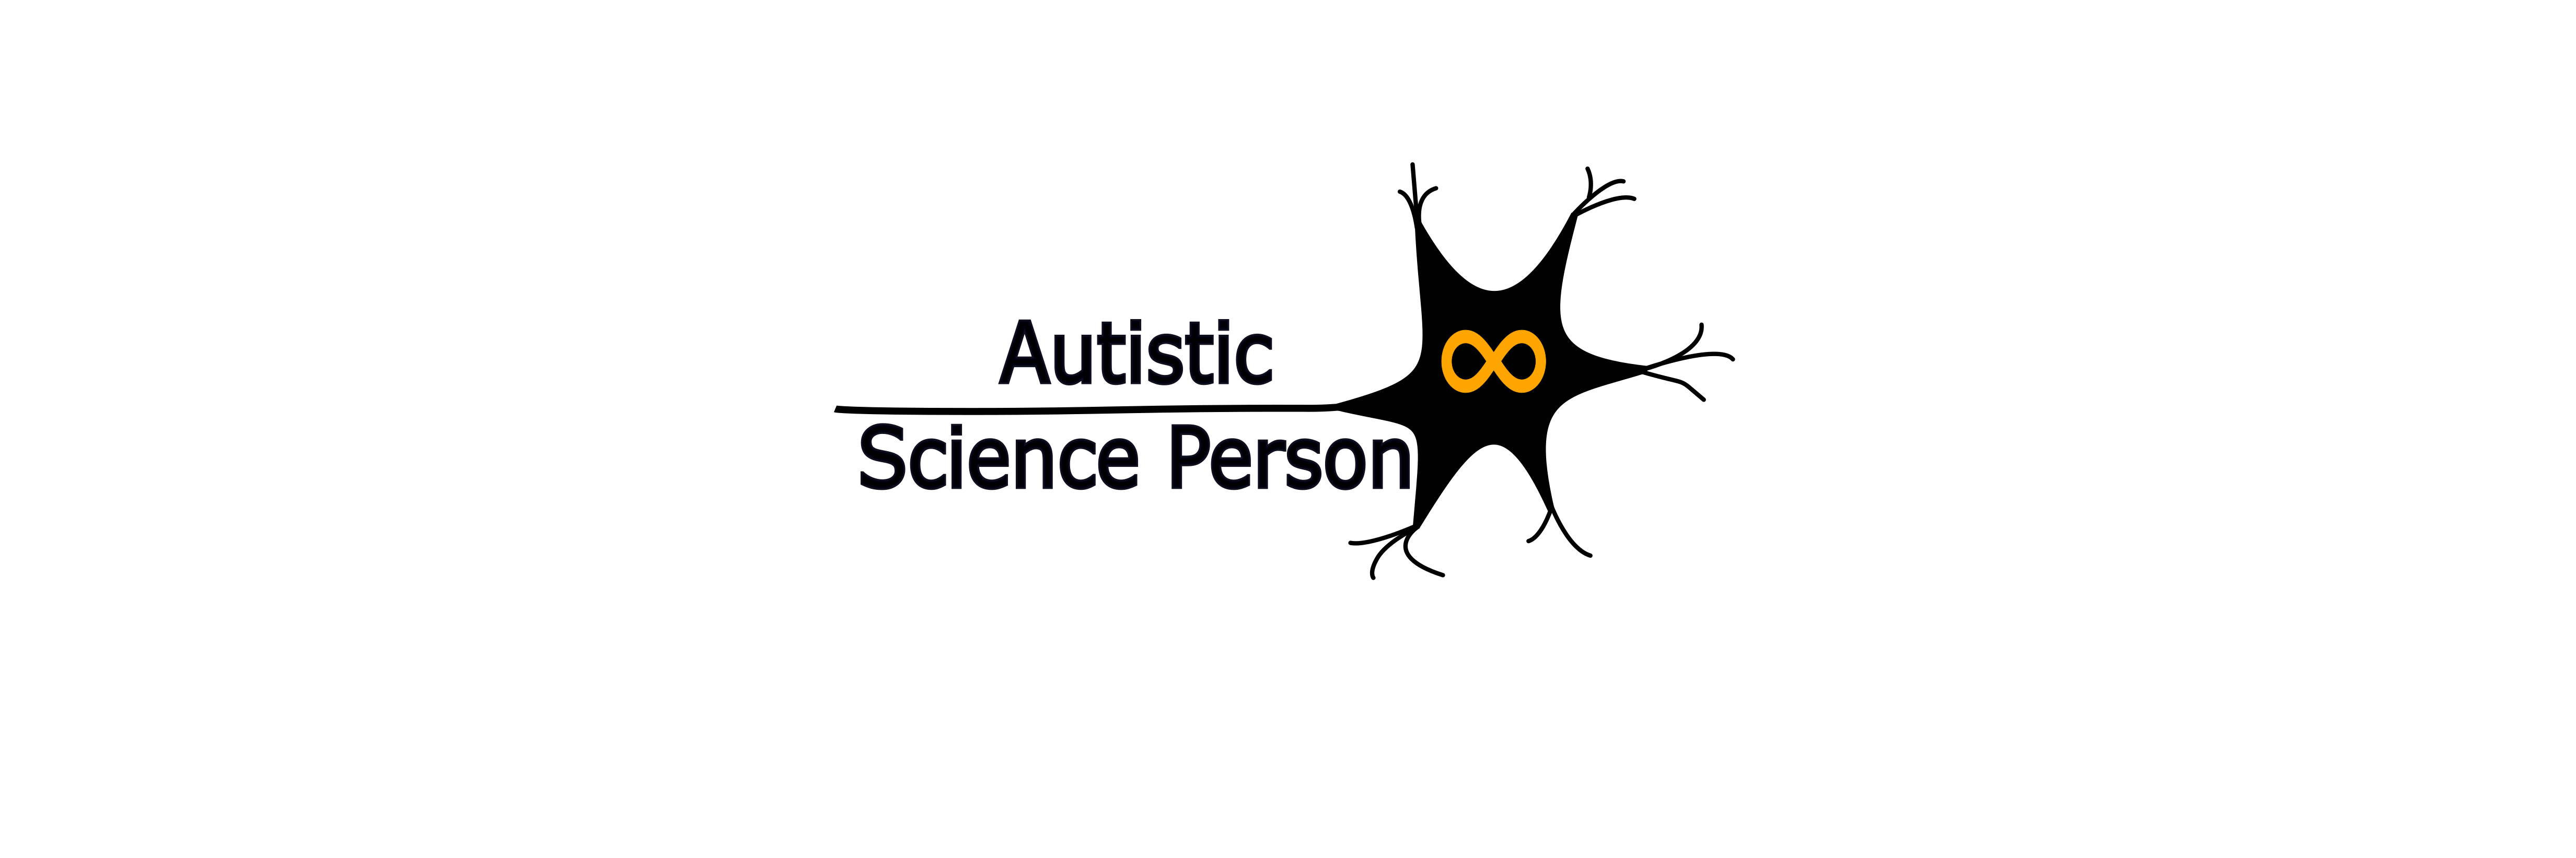 Autistic Science Person with a cartoon of a neuron and a yellow infinity symbol in the middle of it.